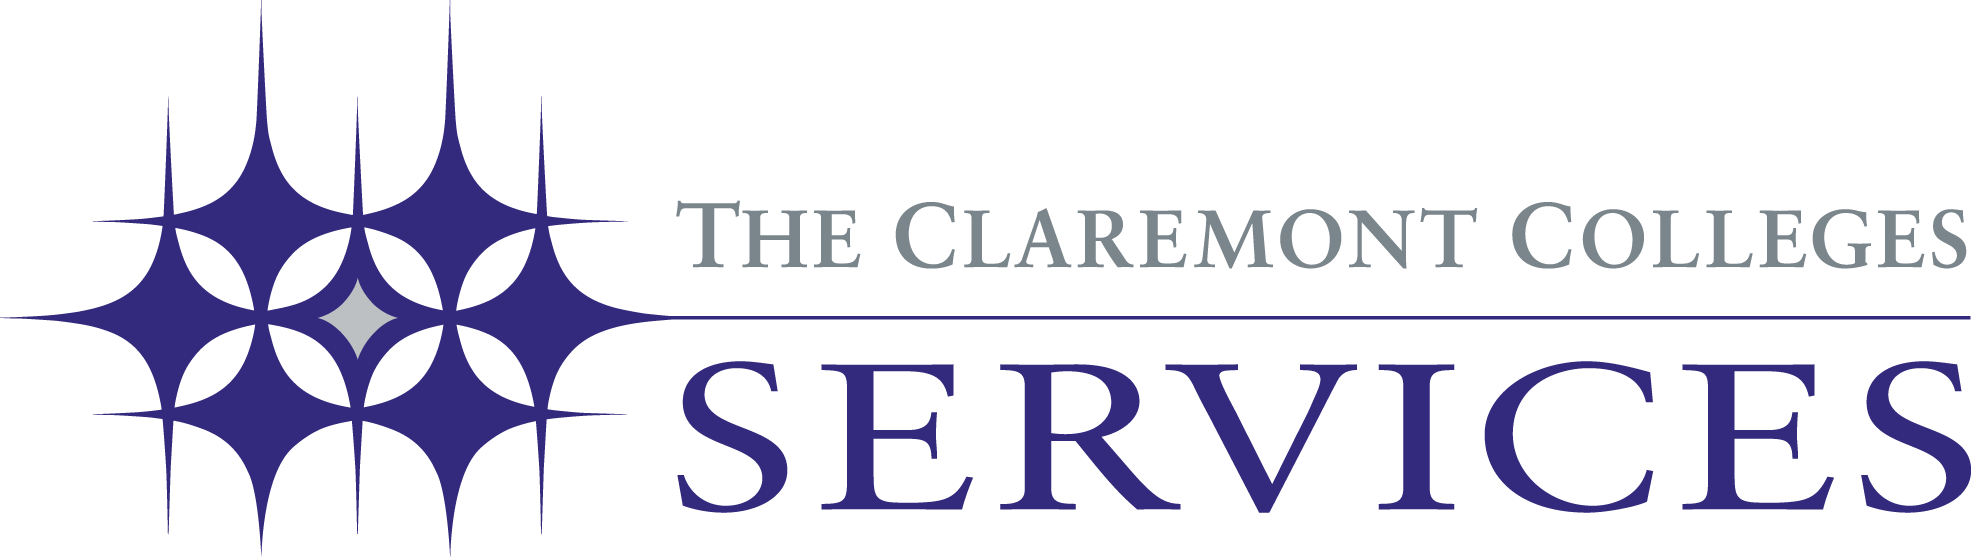 Welcome to The Claremont Colleges Services ID Card Office  Header Image